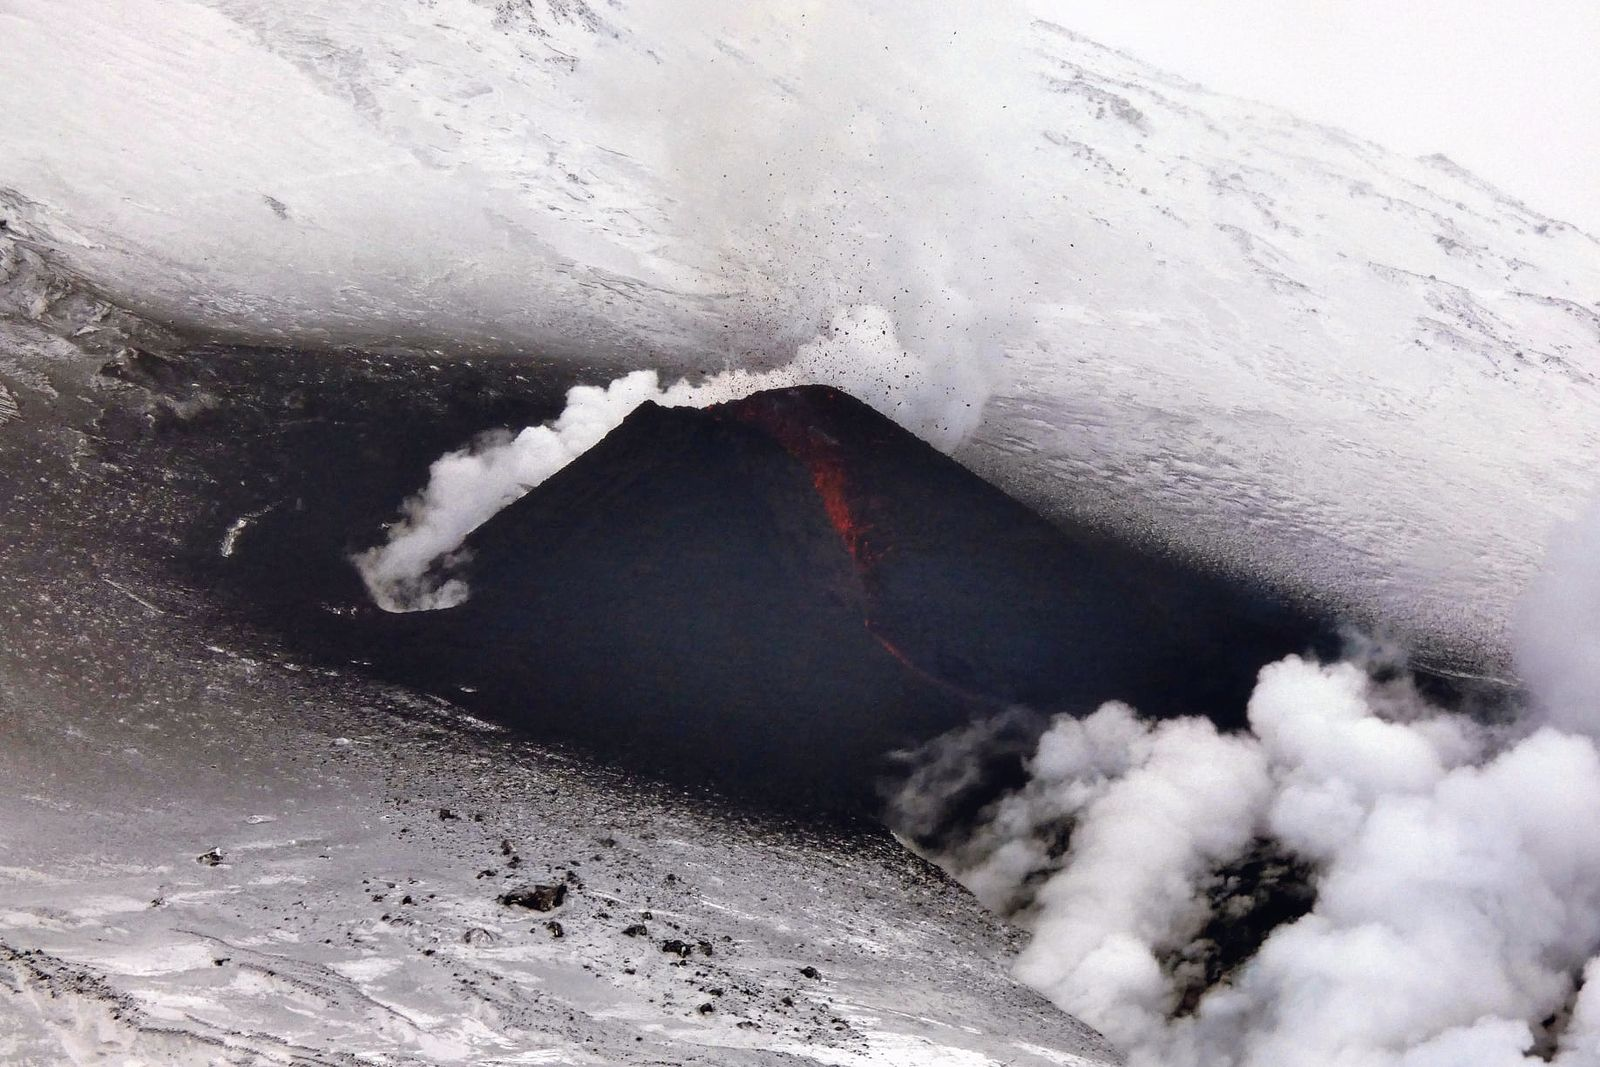 Klyuchevskoy- the growing cinder cone on the active crack of the NW flank - photo Сергей Самойленко / 02.28.2021